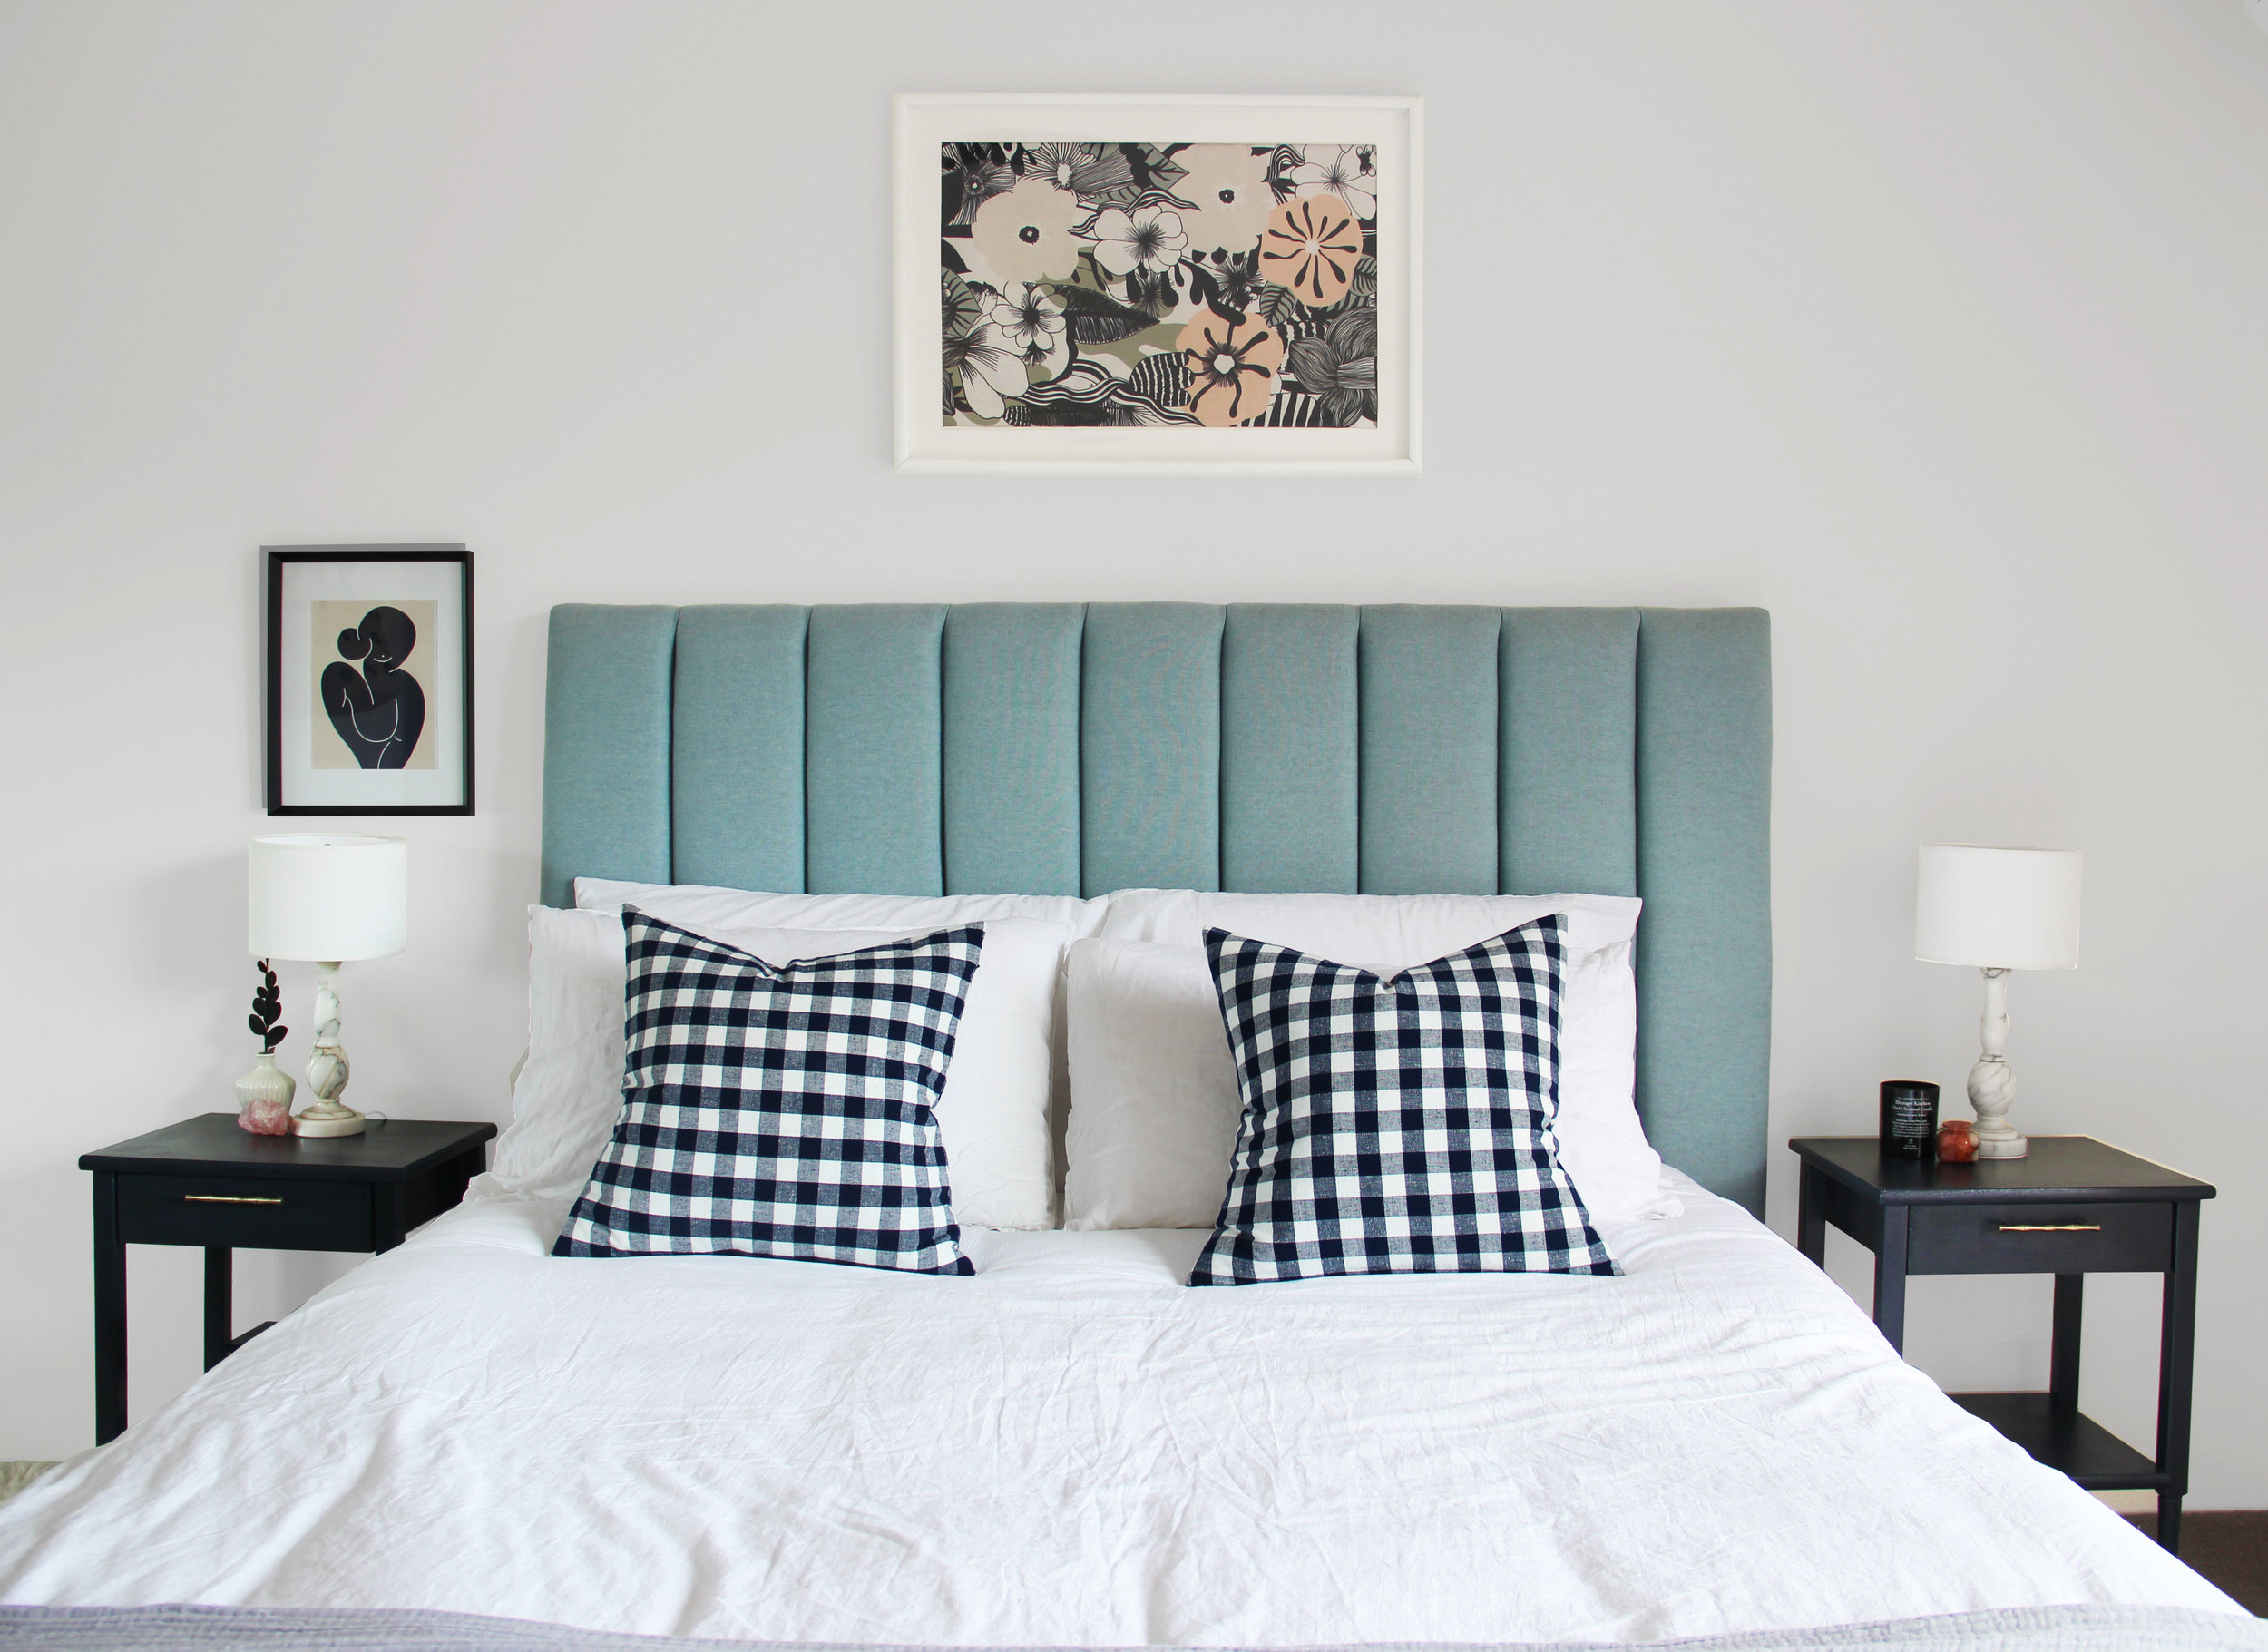 Pull out an accent colour from elements already existing in your room.